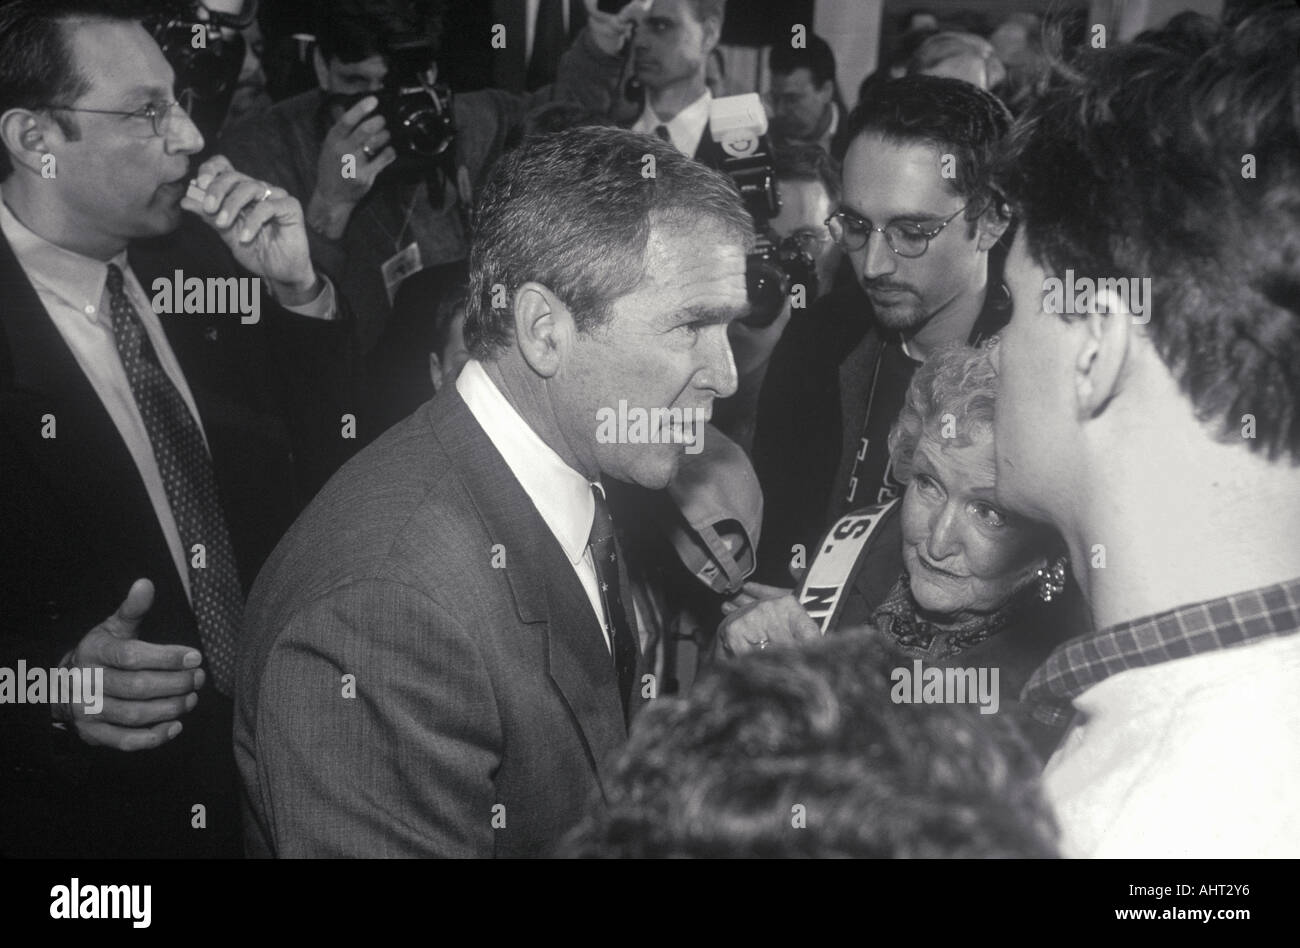 George W Bush speaking at Londonderry High School NH January 2000 Stock Photo